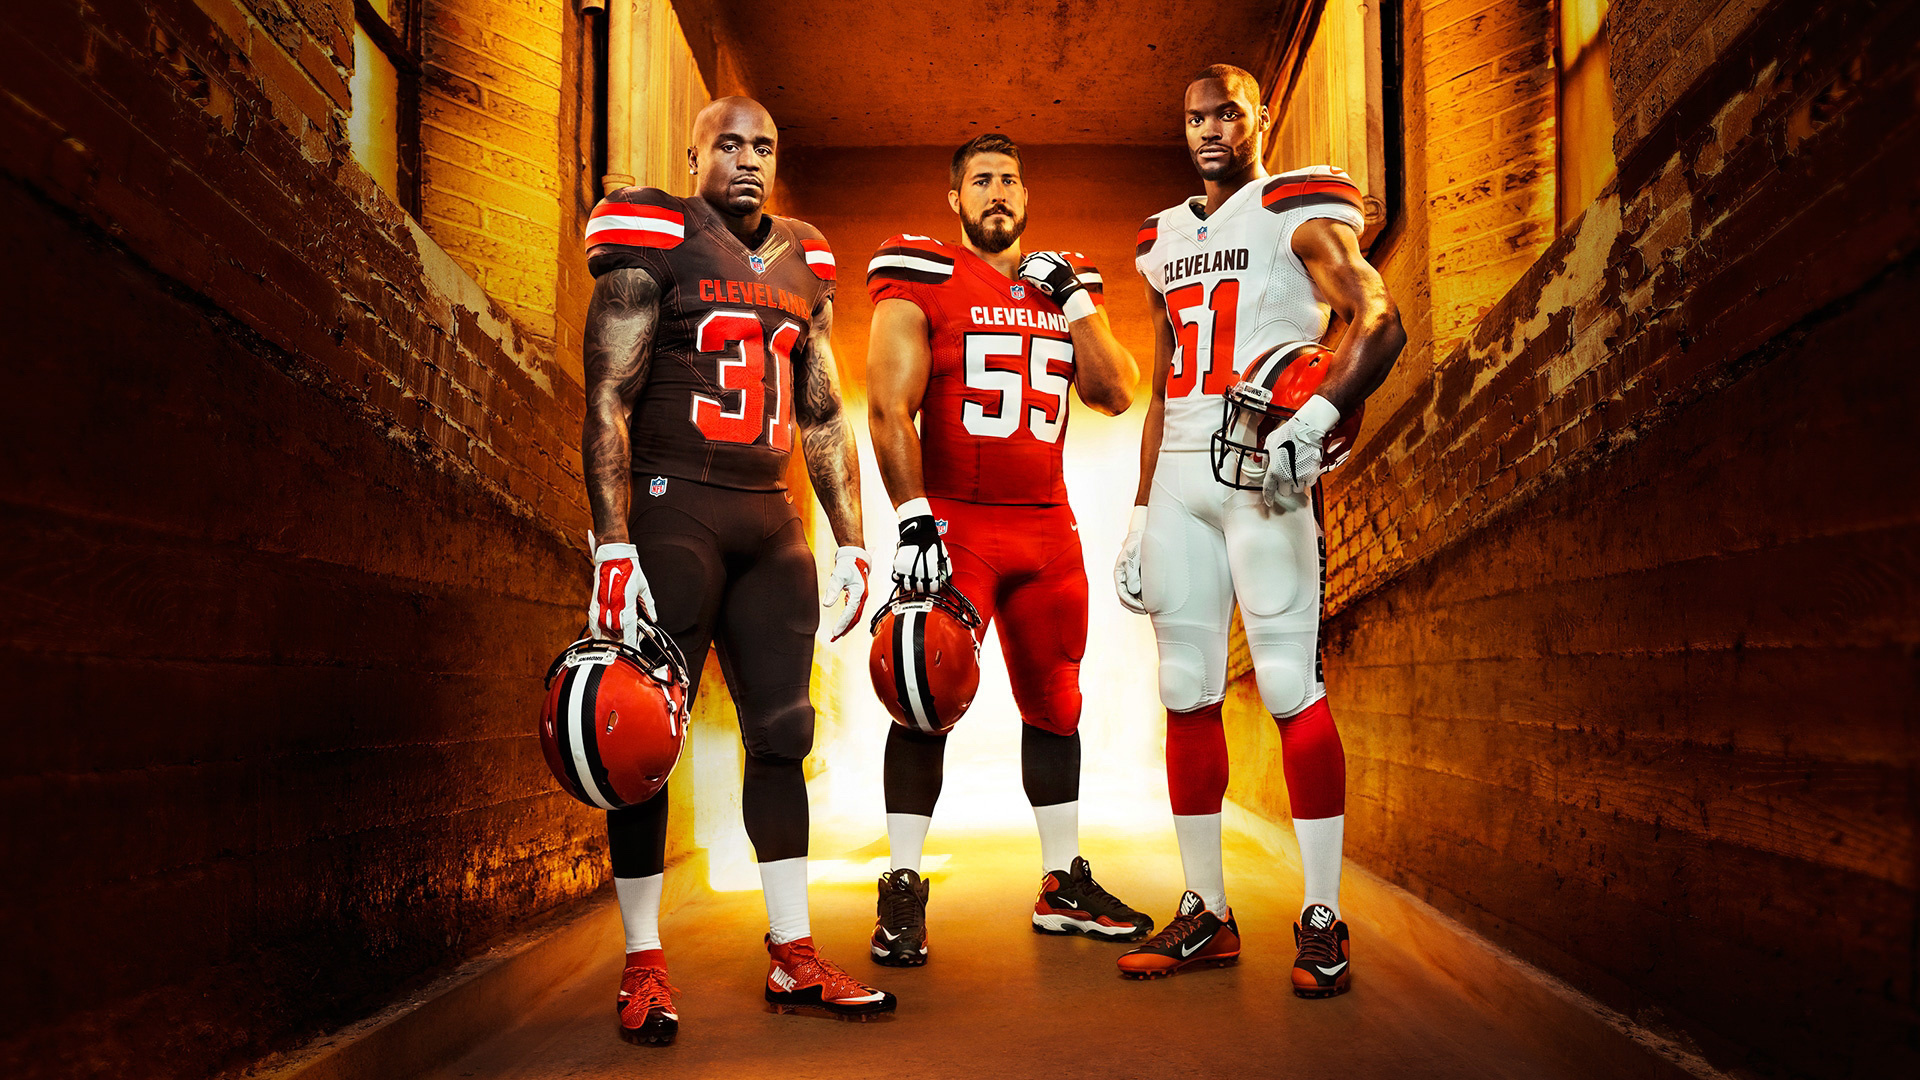 Cleveland Browns Wallpapers Hd Images Download   Cleveland Browns 1920x1080